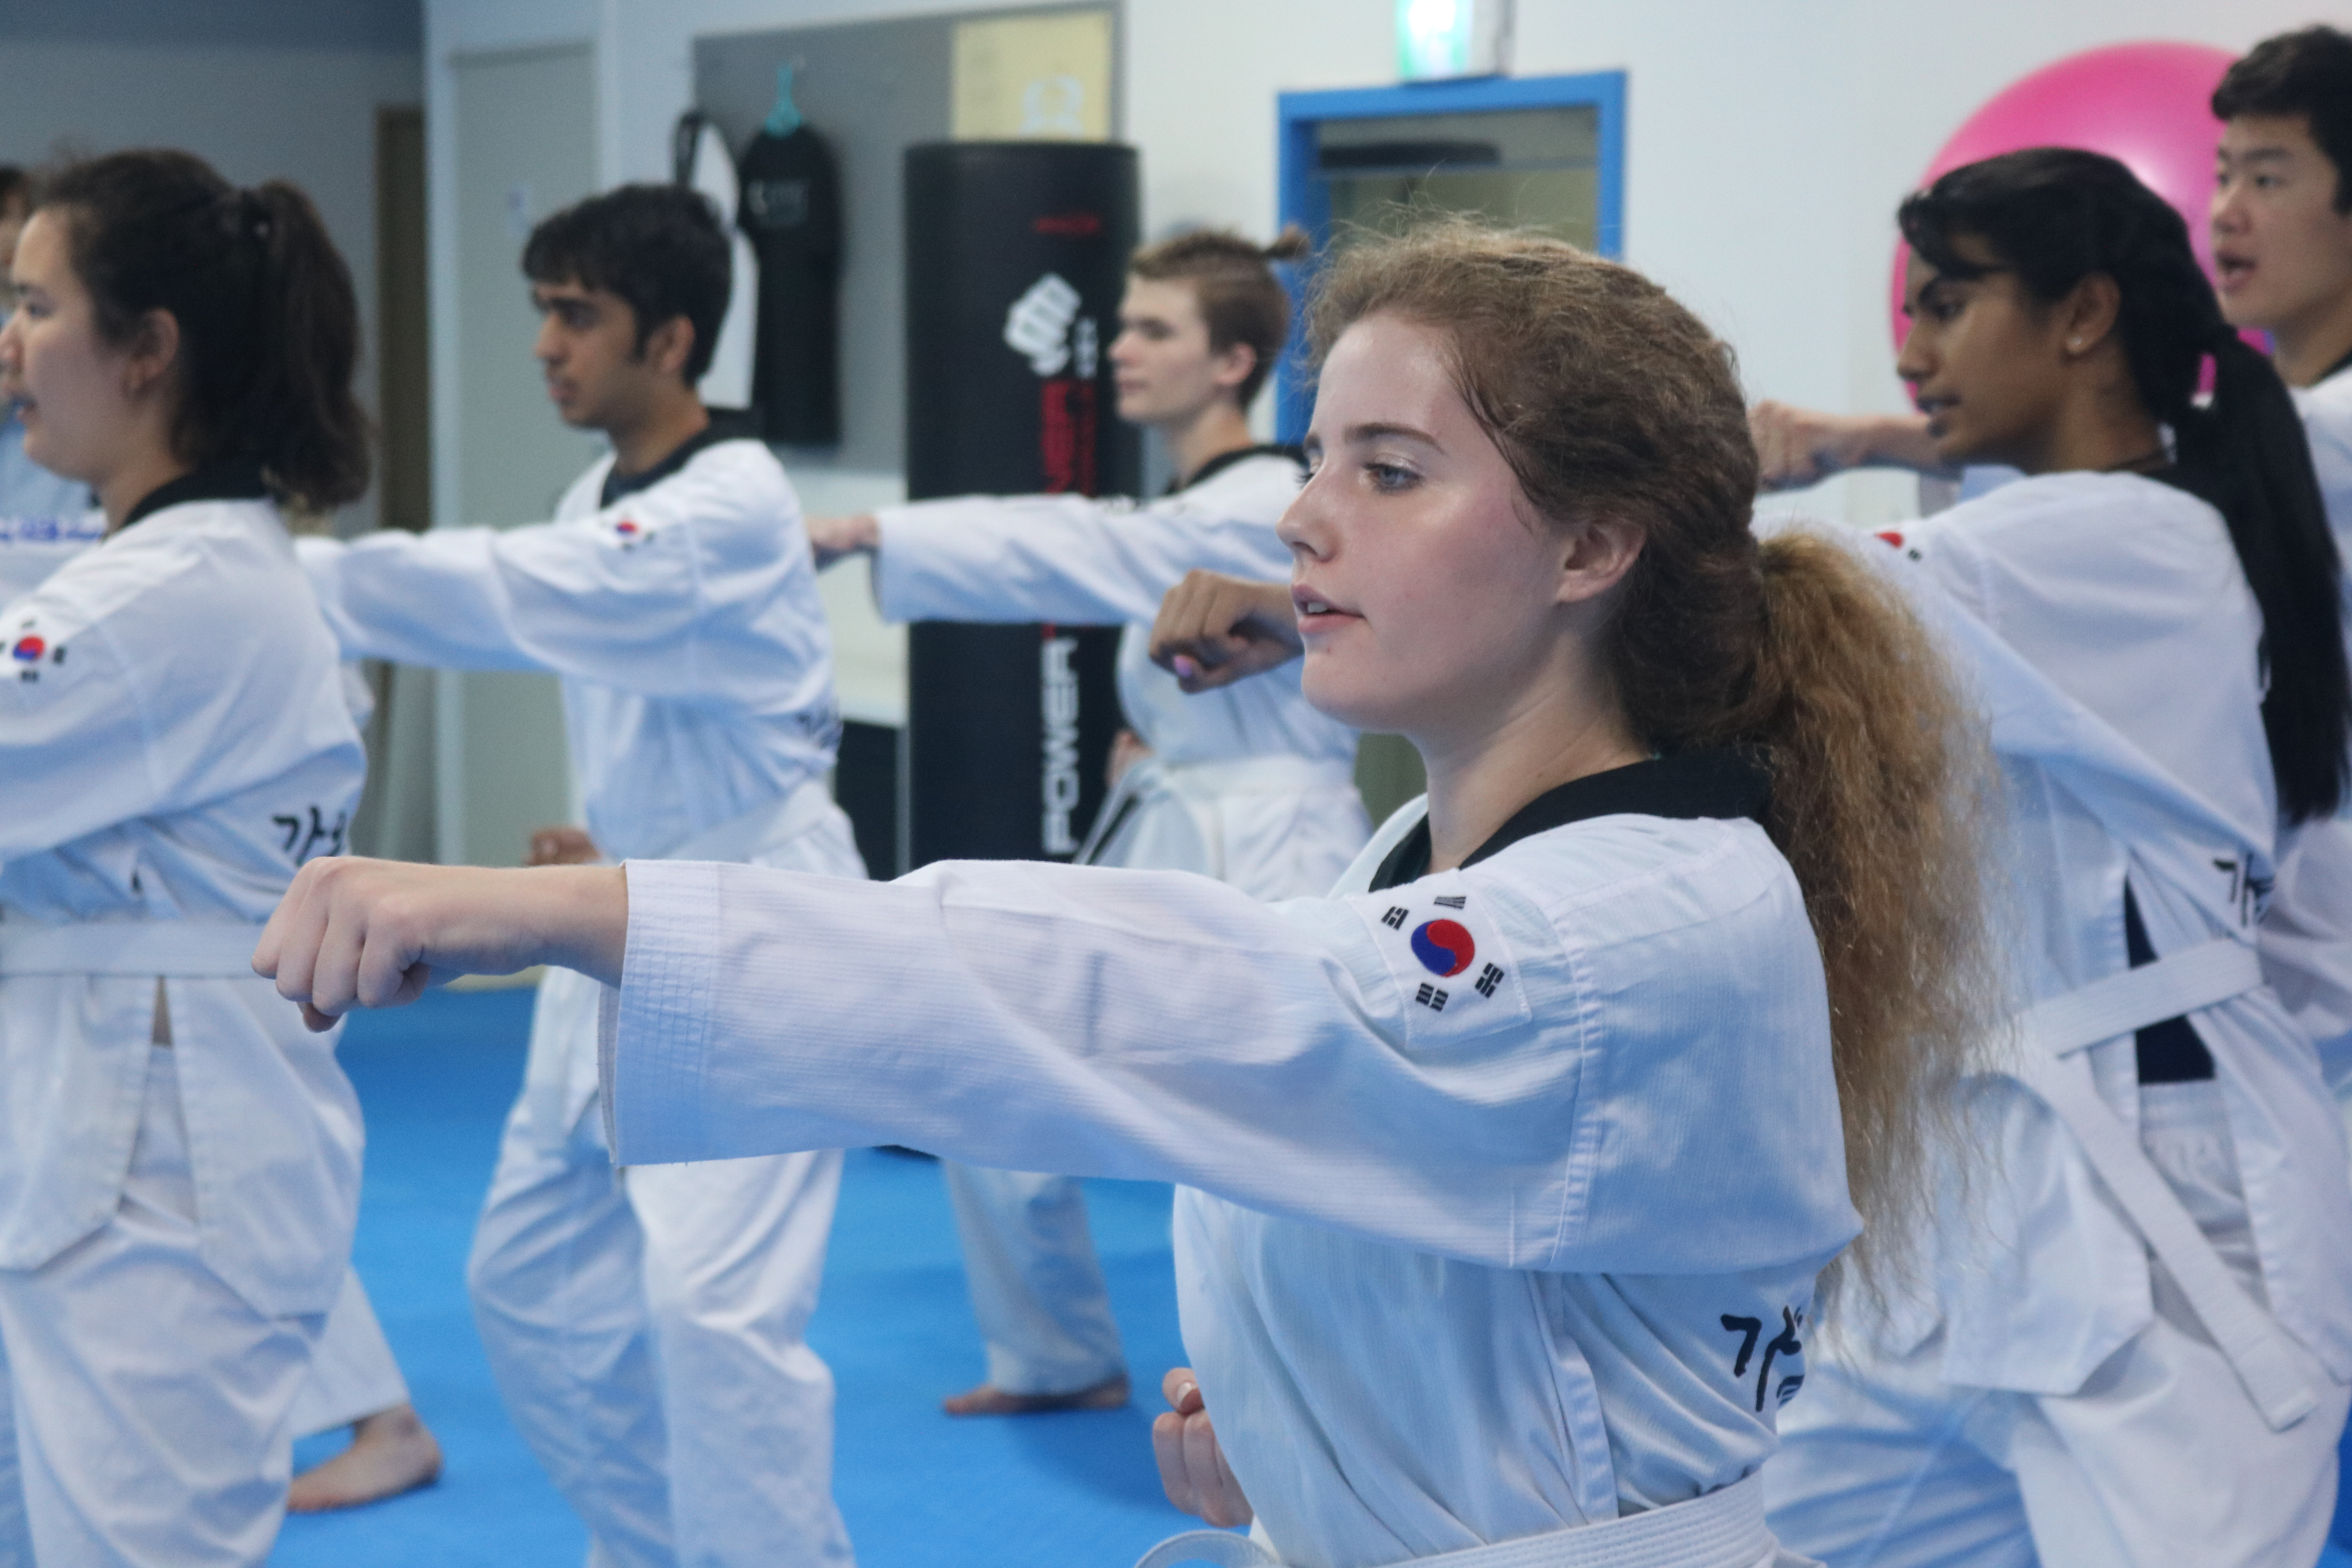 Taekwondo, Korean martial arts disciplining your body and mind